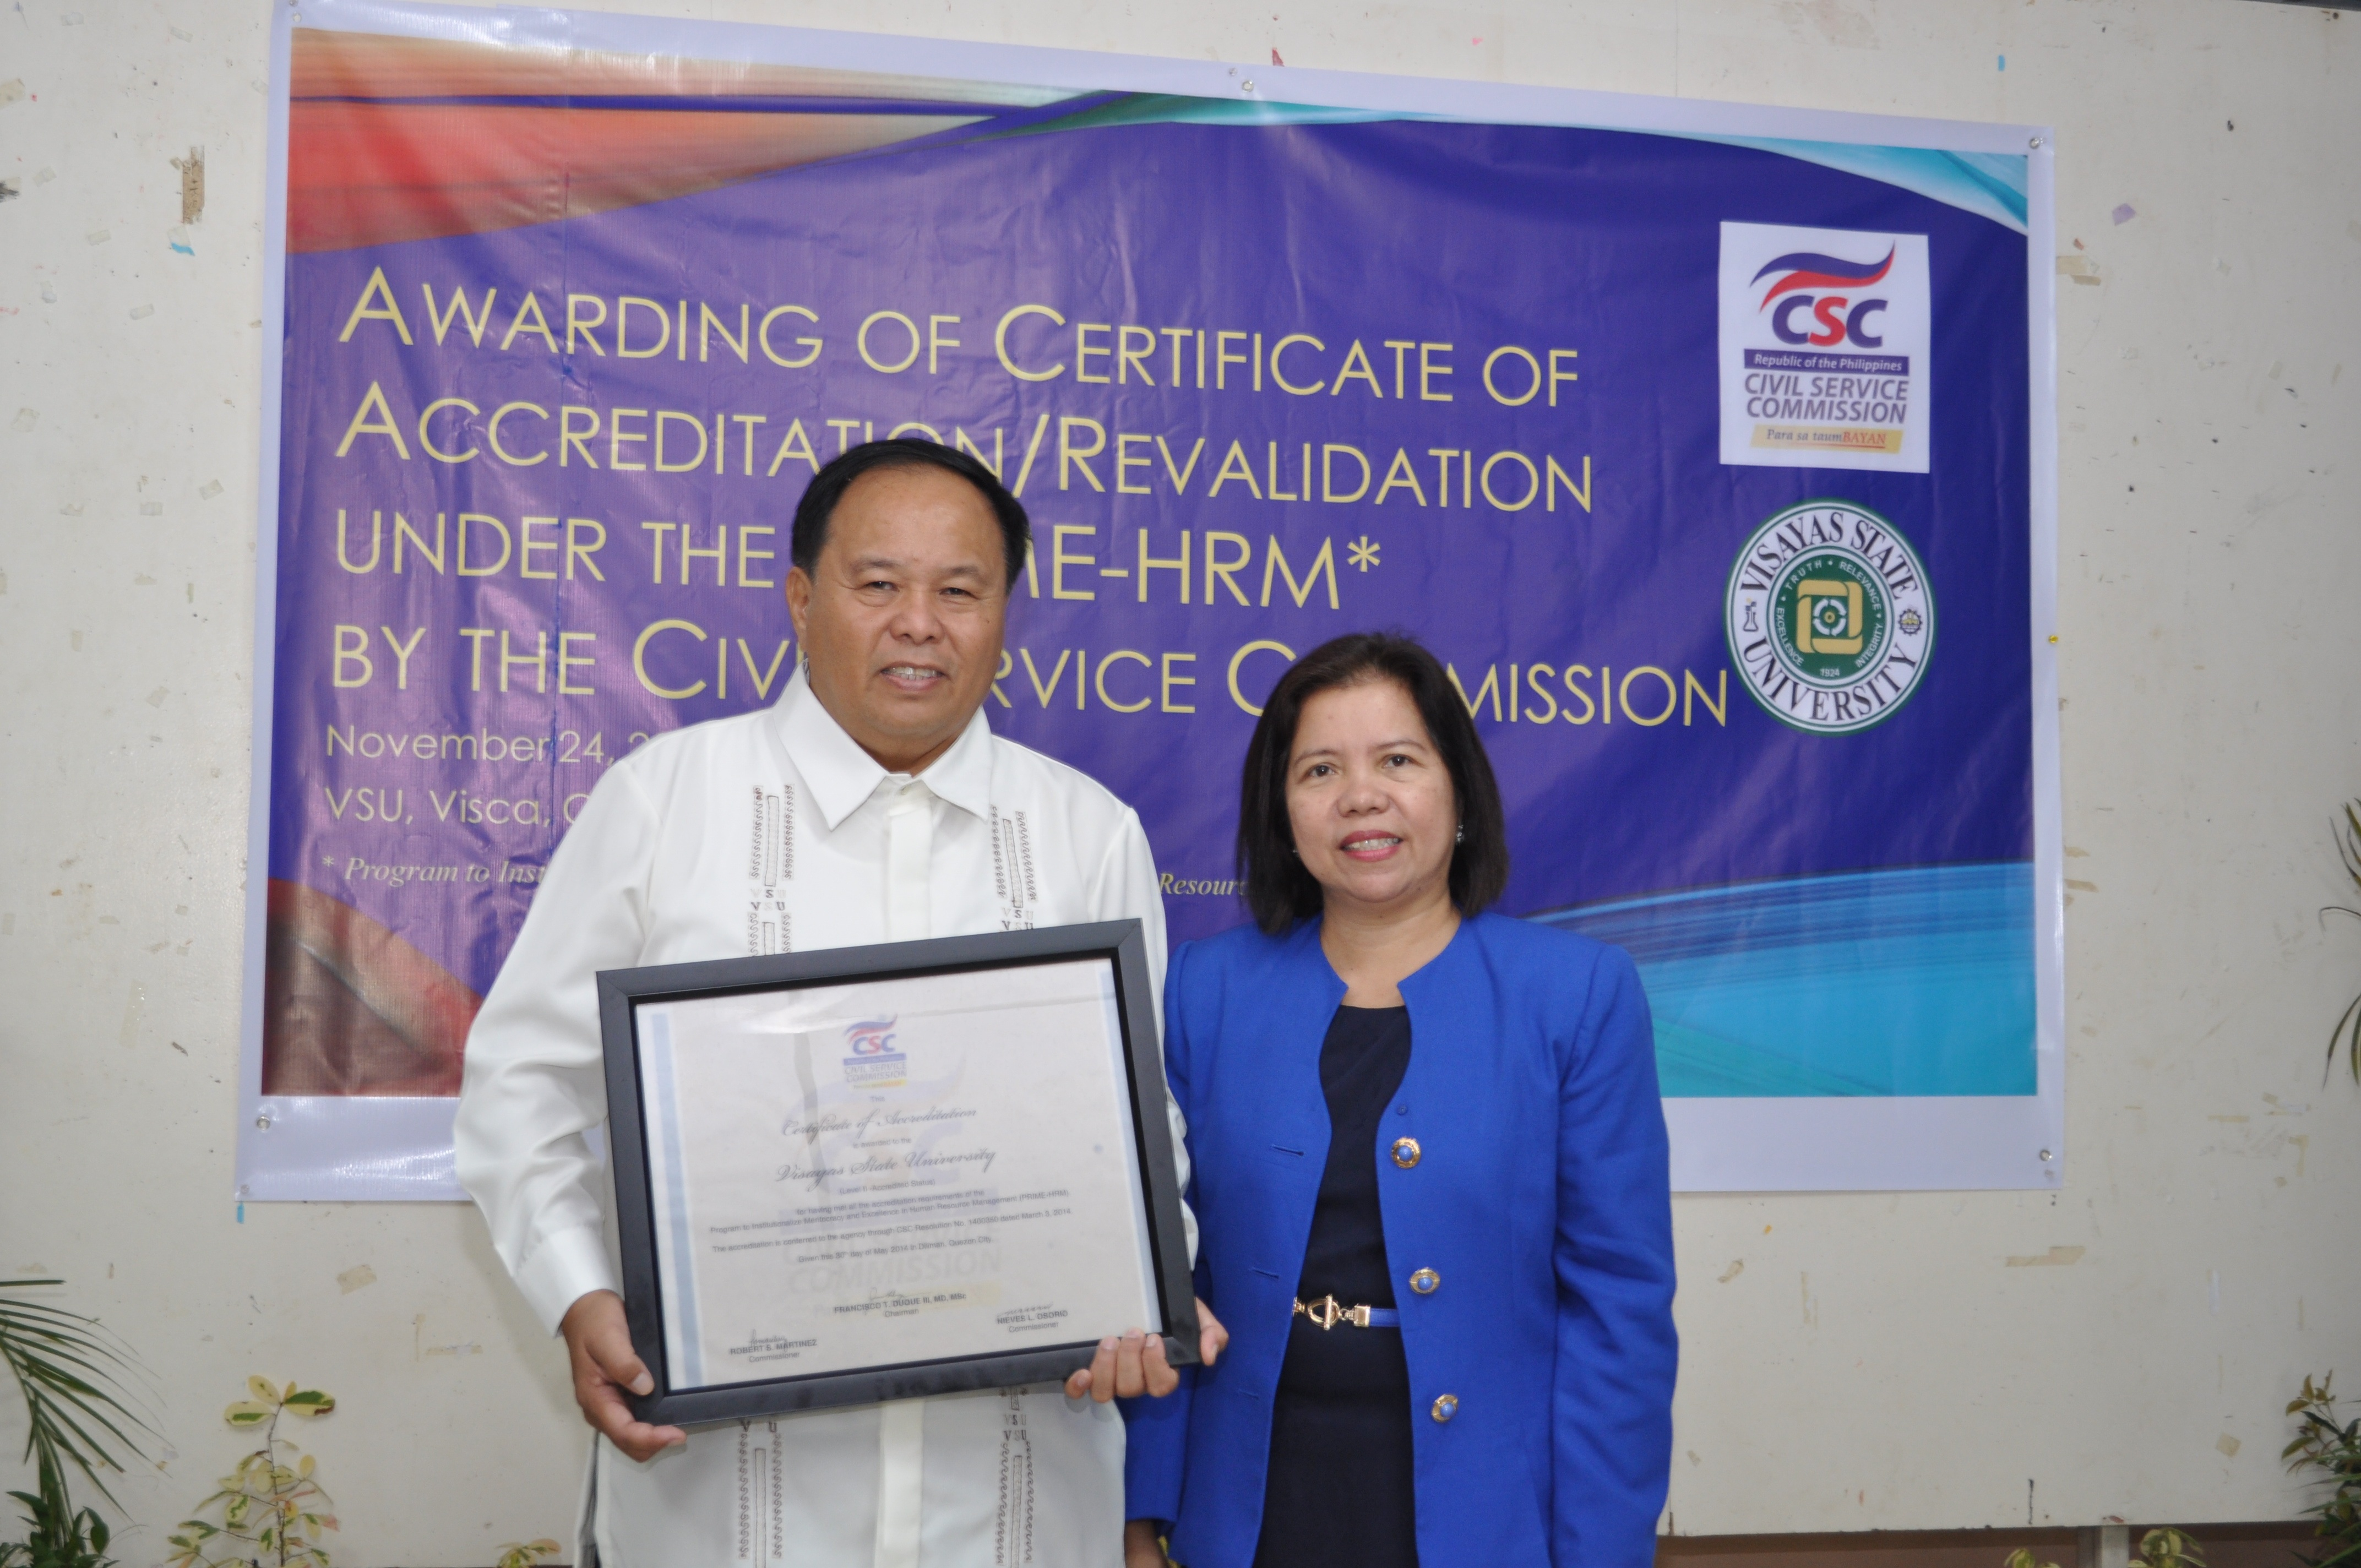 Dr.-Jose-L.-Bacusmo-and-Dir.-Pharida-Q.-Aurelia-posing-during-the-awarding-of-Certificate-of-Accreditation-to-VSU.